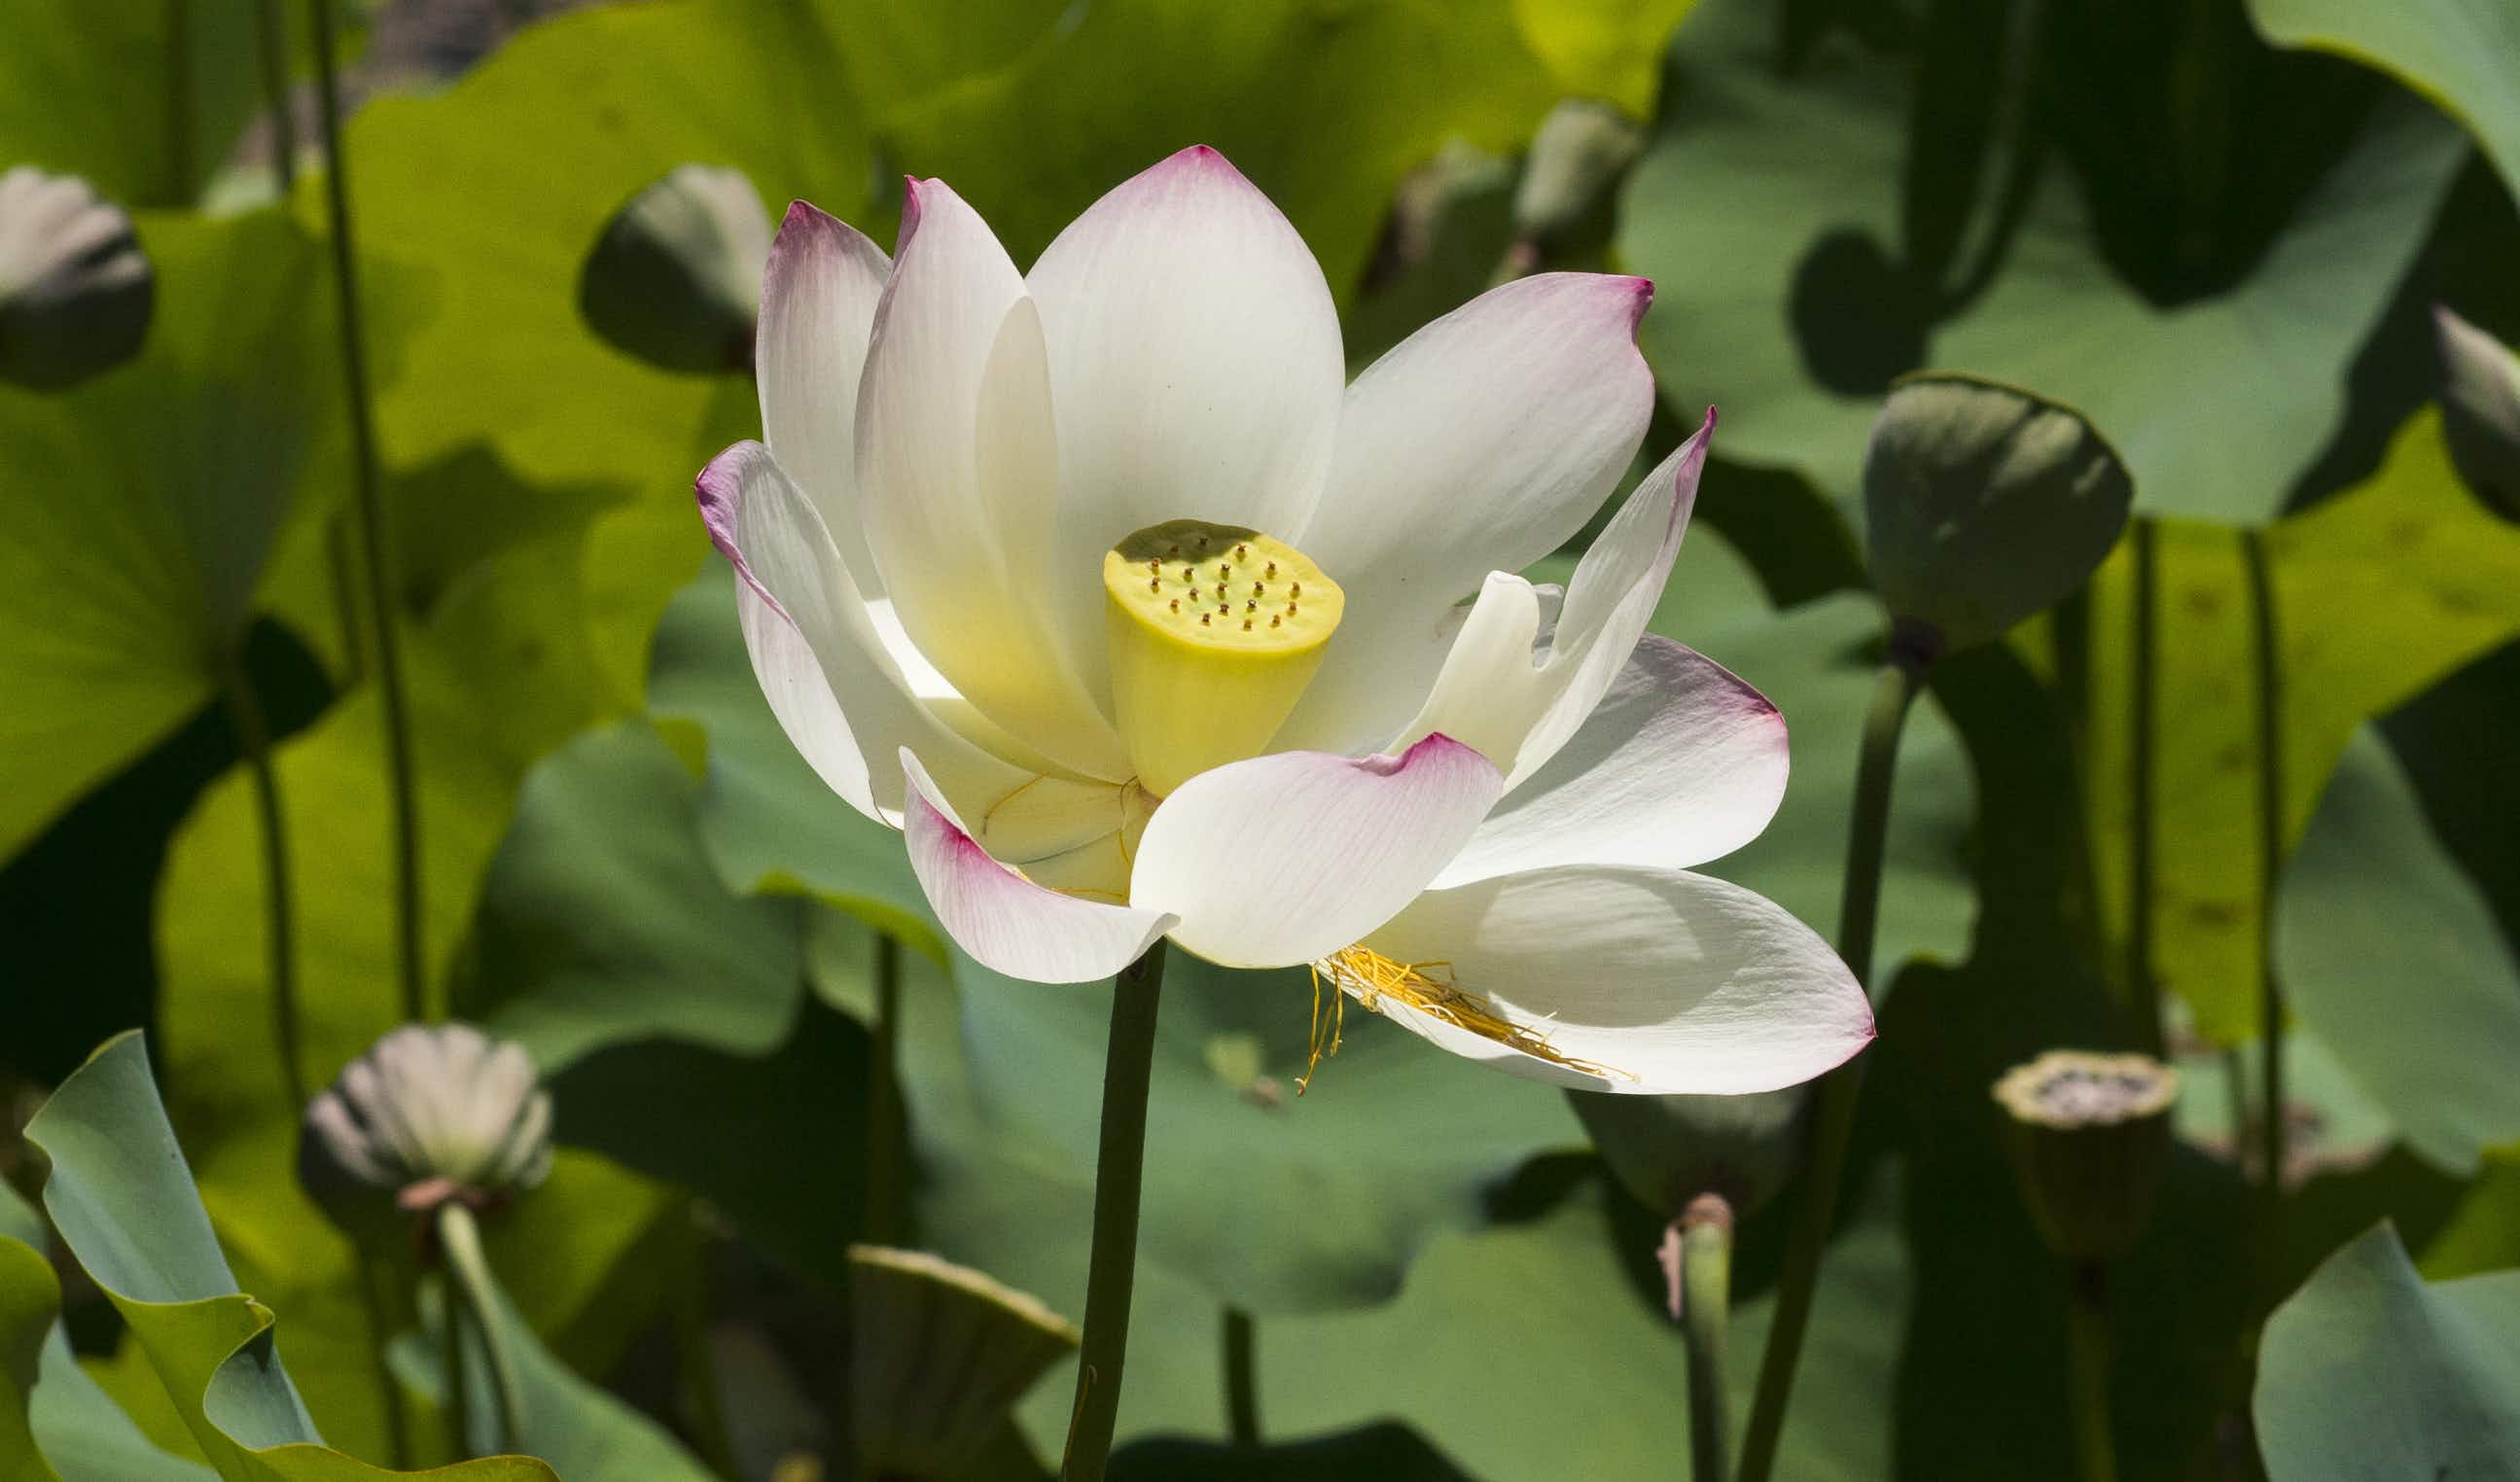 LA's Echo Park sees an amazing lotus bloom a month before annual festival